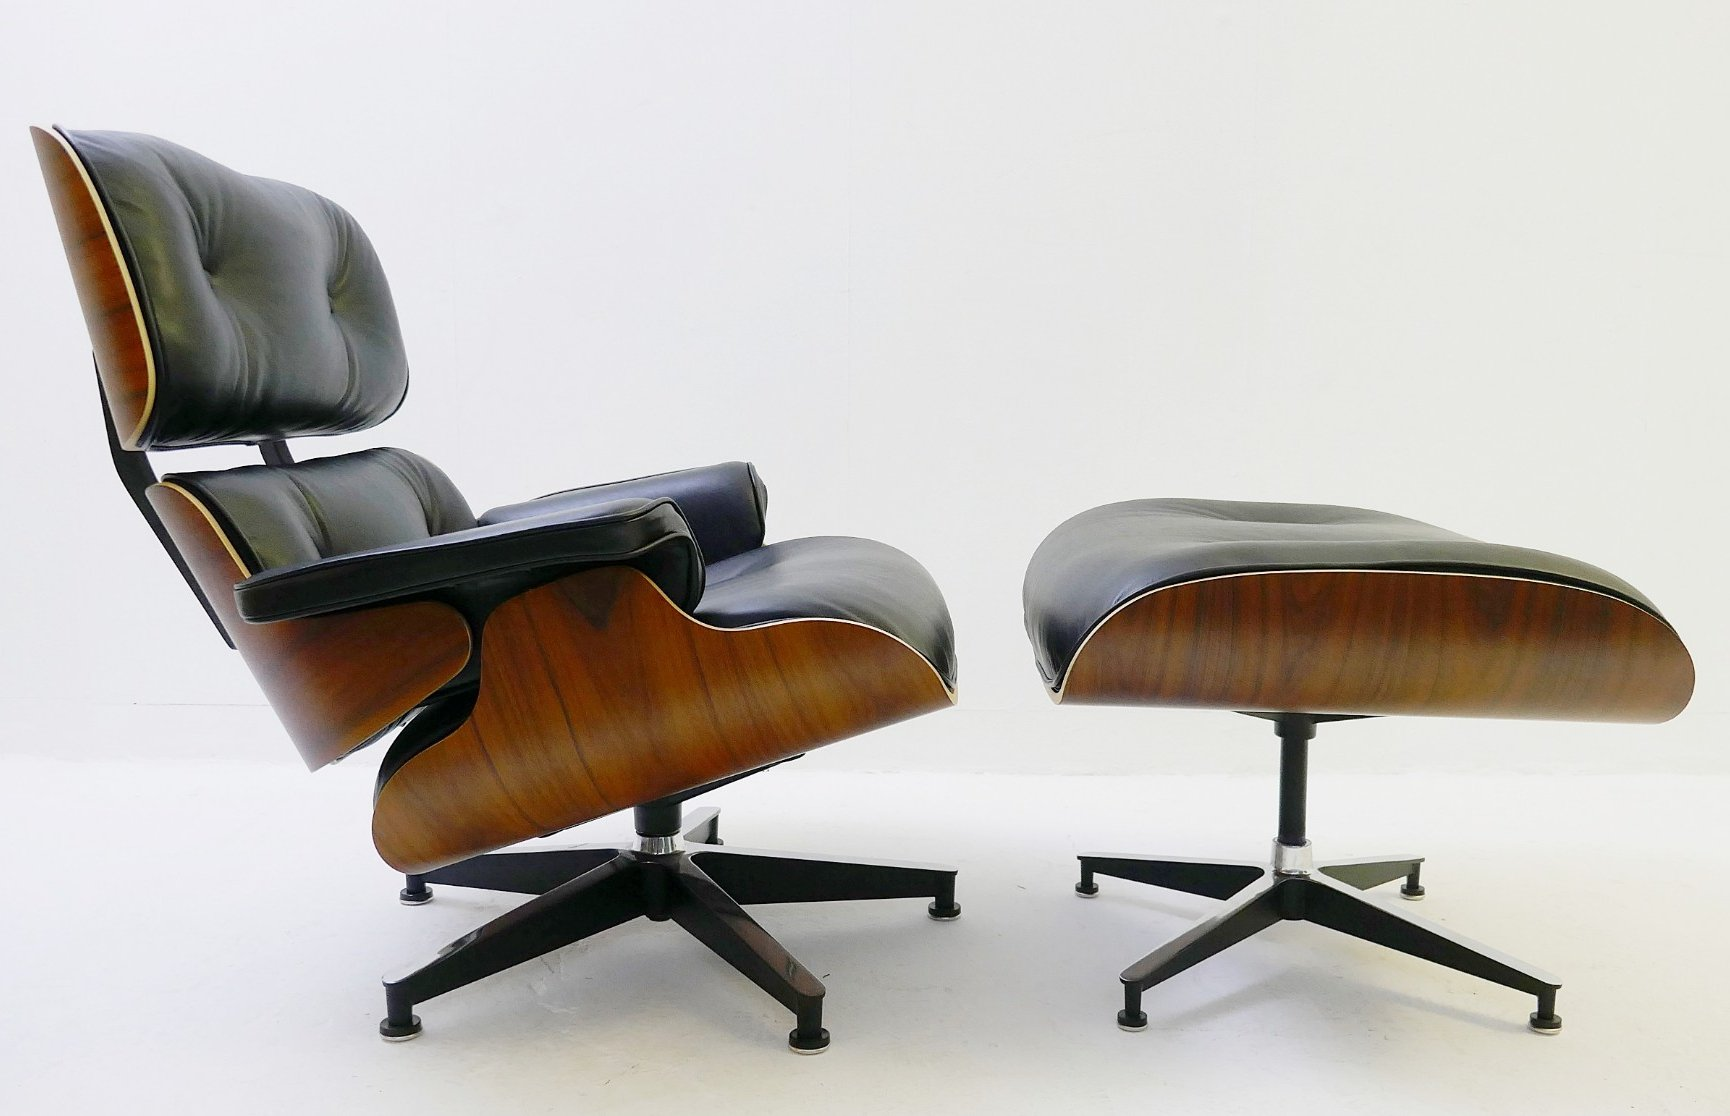 lounge chair ottoman by charles ray eames for herman miller 93179. Black Bedroom Furniture Sets. Home Design Ideas